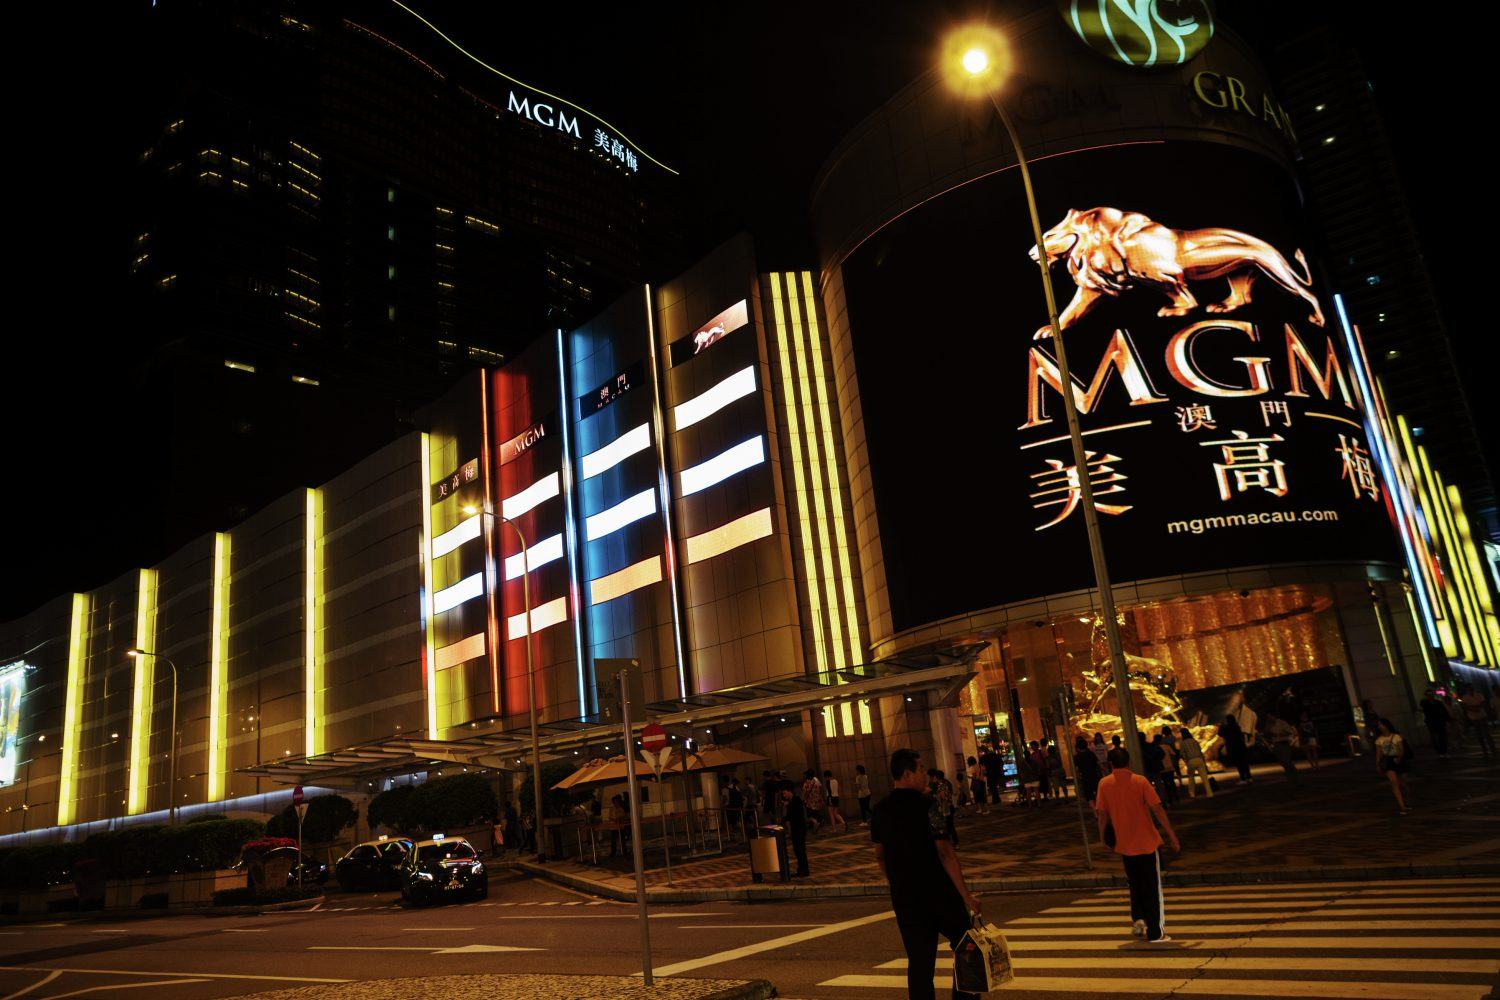 Macau gaming tables casinos